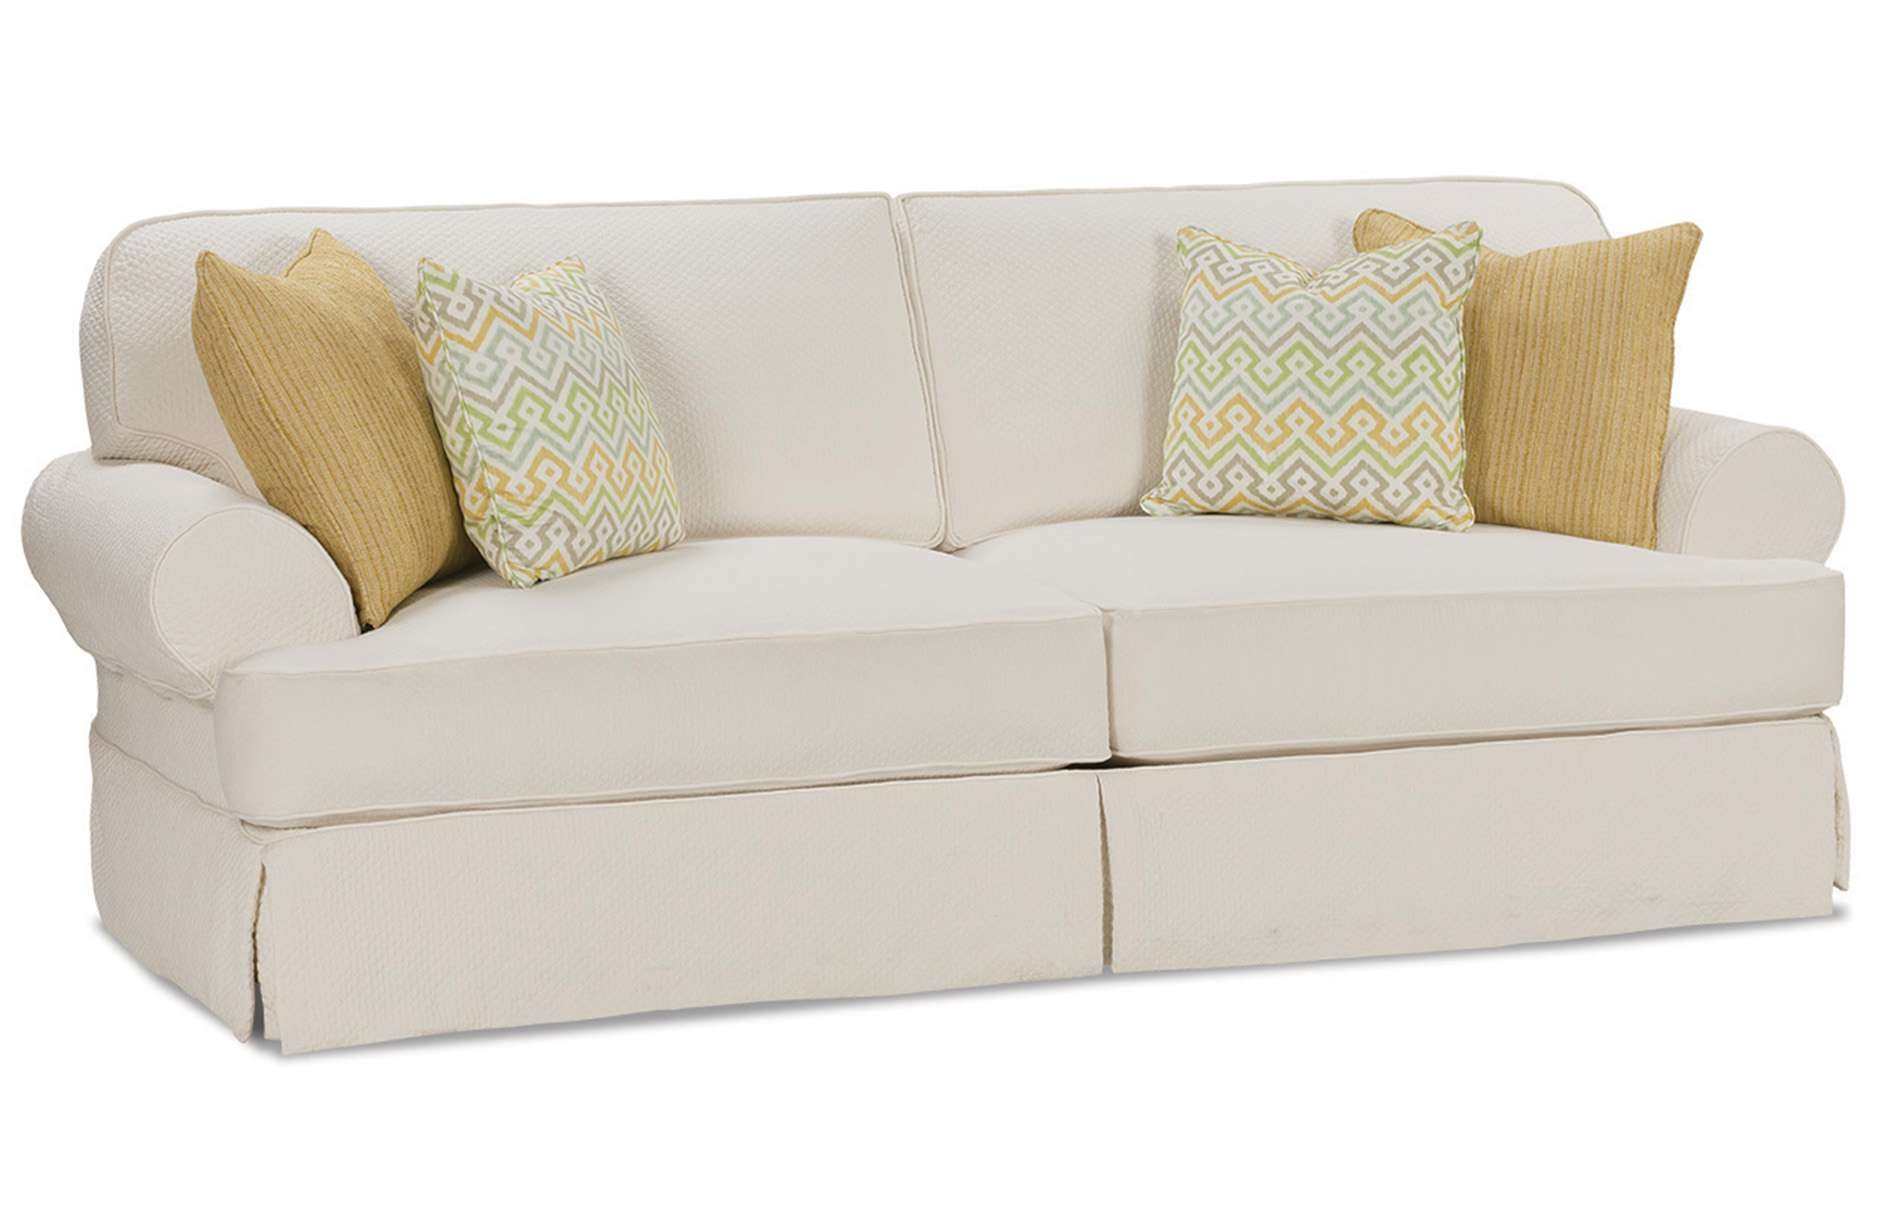 Sofa Slipcovers Ottoman Slipcovers Sectional Slipcovers Rowe Pertaining To Slipcovers For Chairs And Sofas (Image 12 of 15)